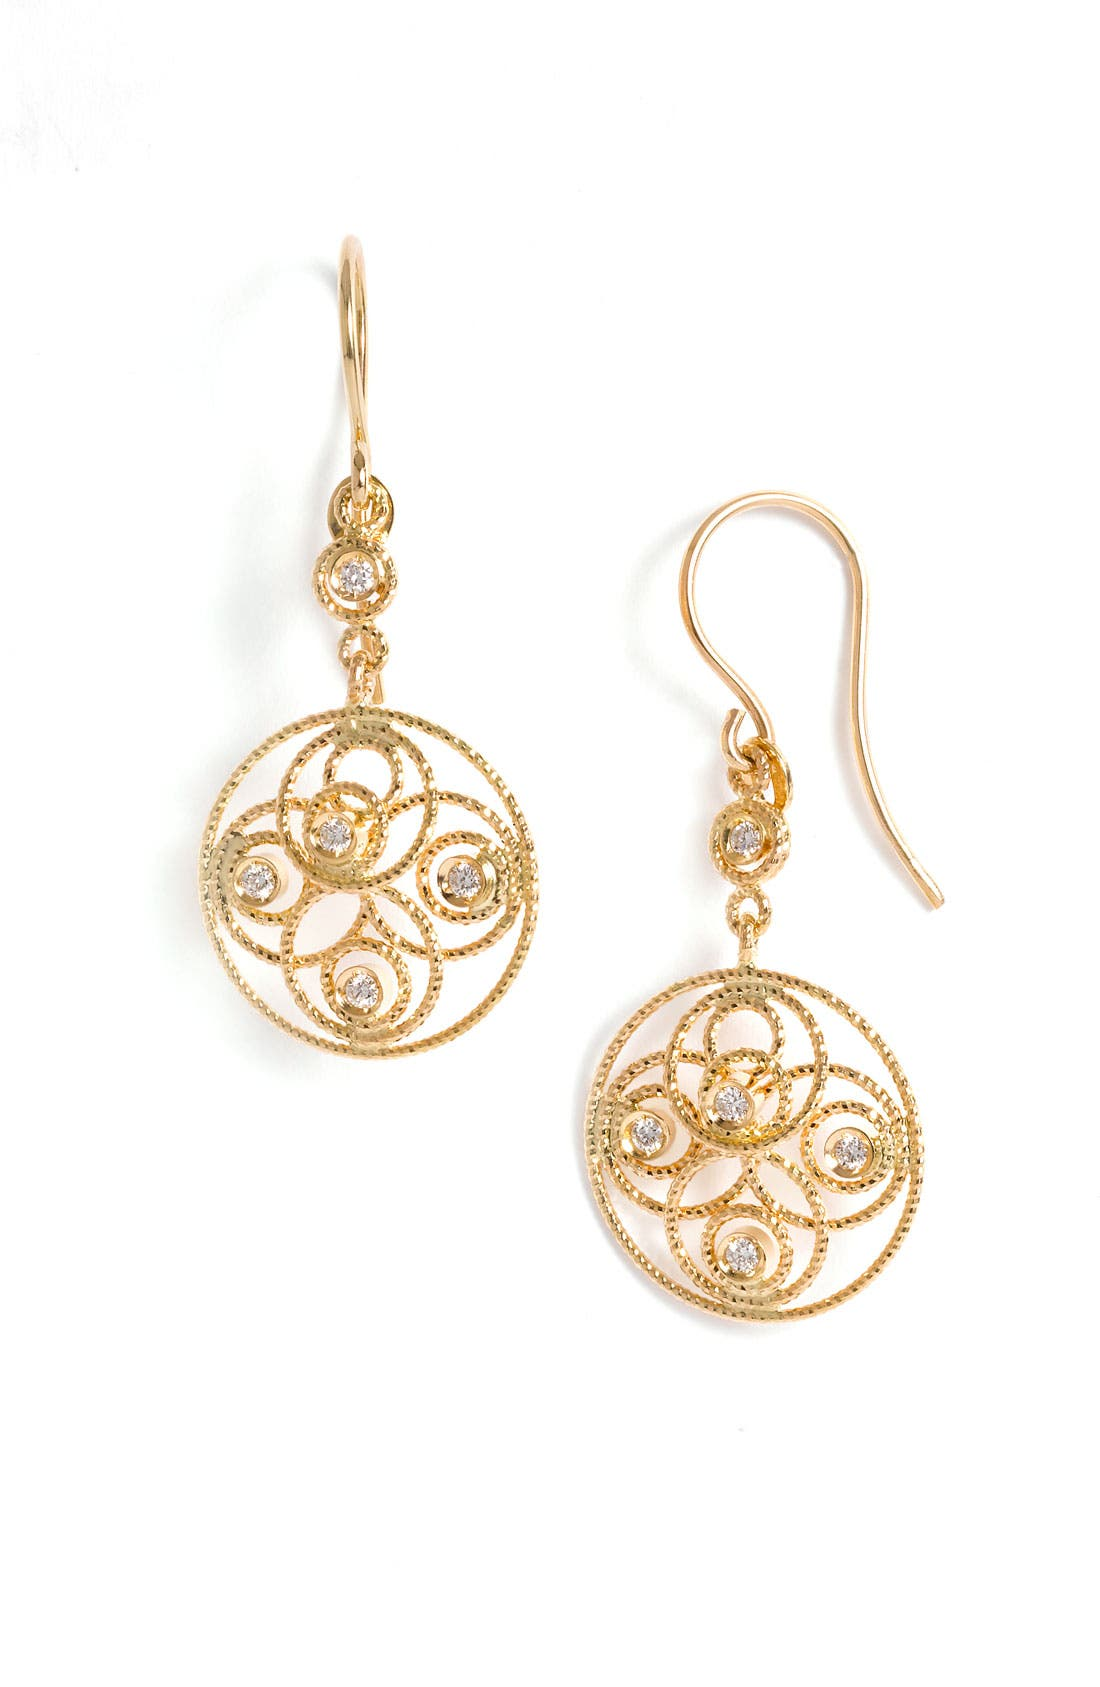 Alternate Image 1 Selected - Roberto Coin 'Moresque' Diamond Circle Earrings